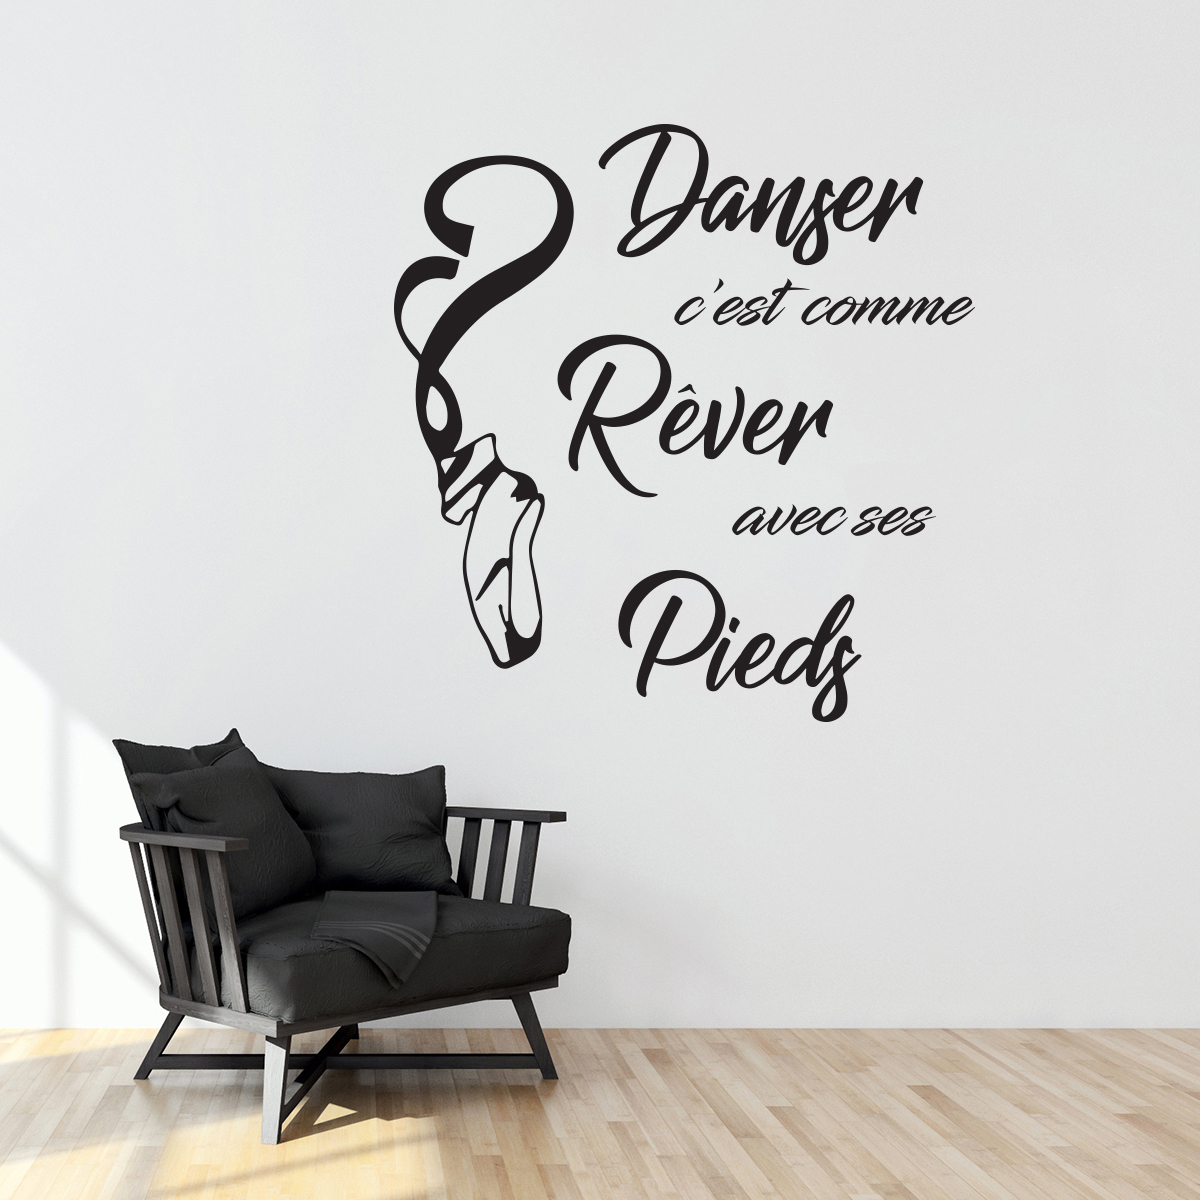 sticker citation danser c 39 est comme r ver avec ses pieds stickers citations fran ais. Black Bedroom Furniture Sets. Home Design Ideas